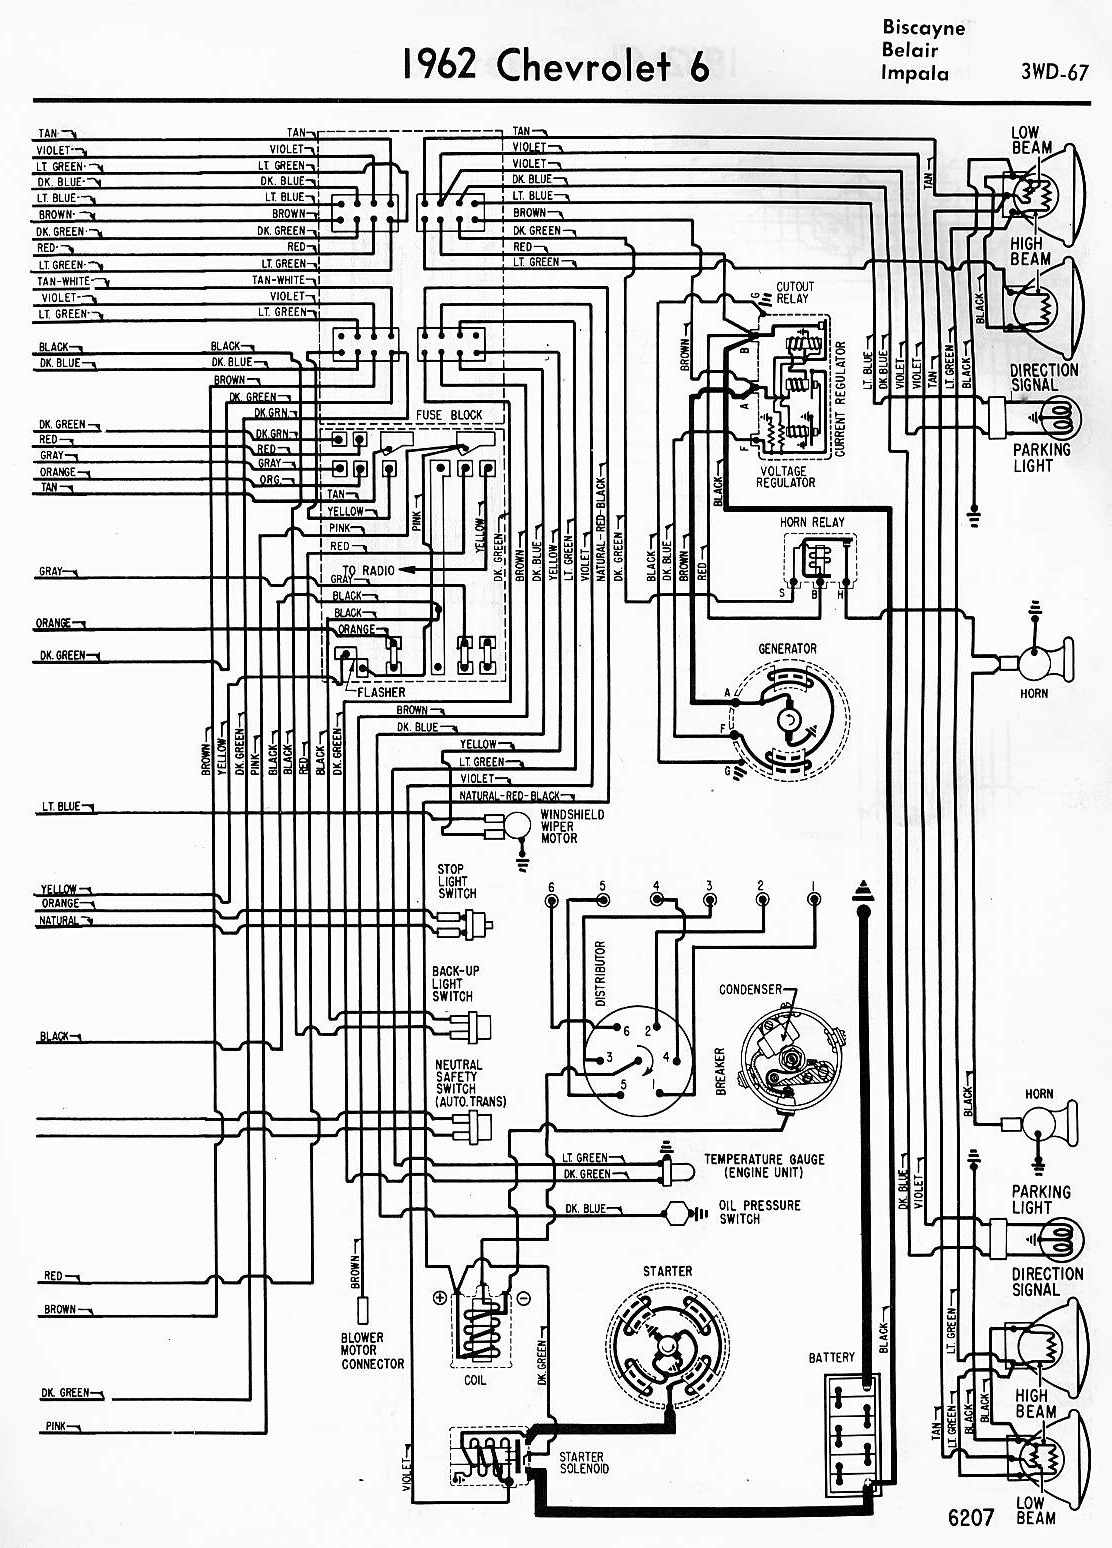 Electrical+Wiring+Diagram+Of+1964+Chevrolet+6 2011 impala wiring diagram 2005 impala ignition wiring diagram 1966 impala wiring harness at gsmx.co